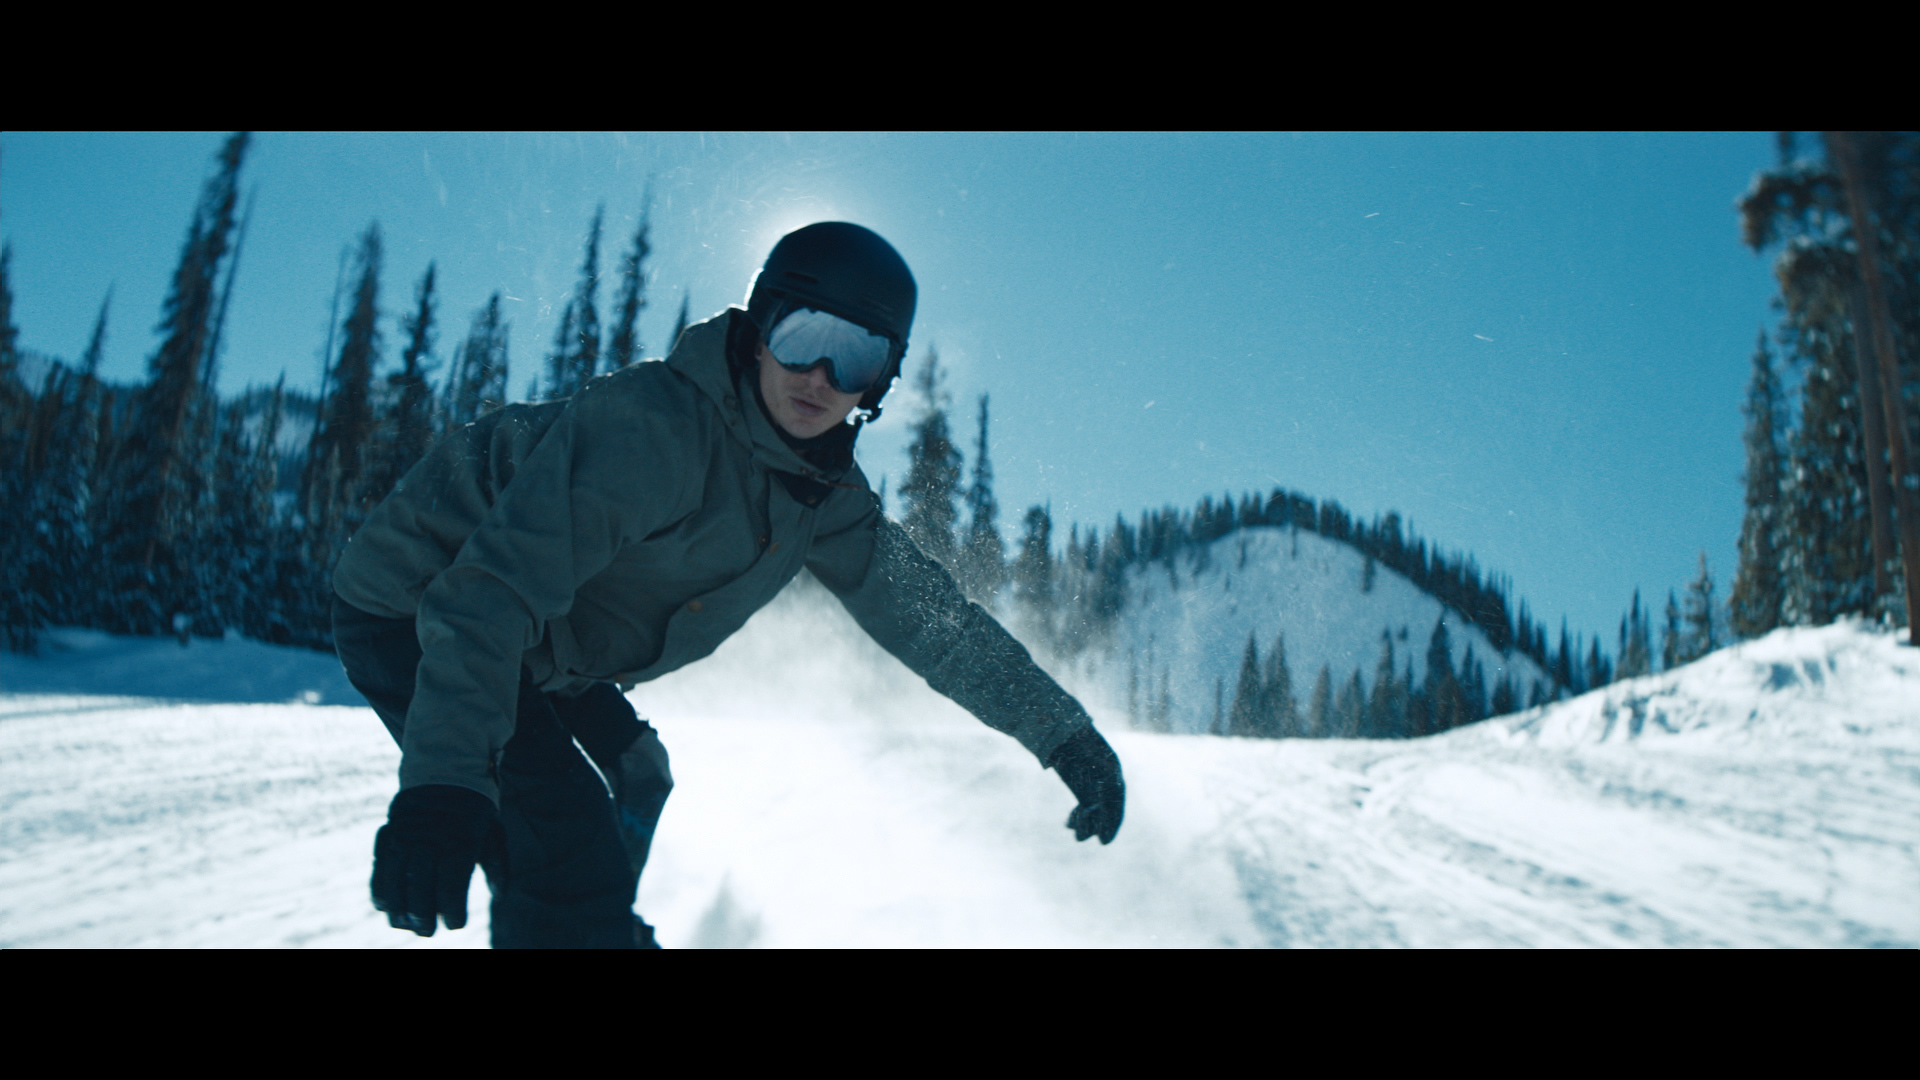 U.S. Paralympic snowboarder Evan Strong in The Hartford's TV ad  (Photo: Business Wire)